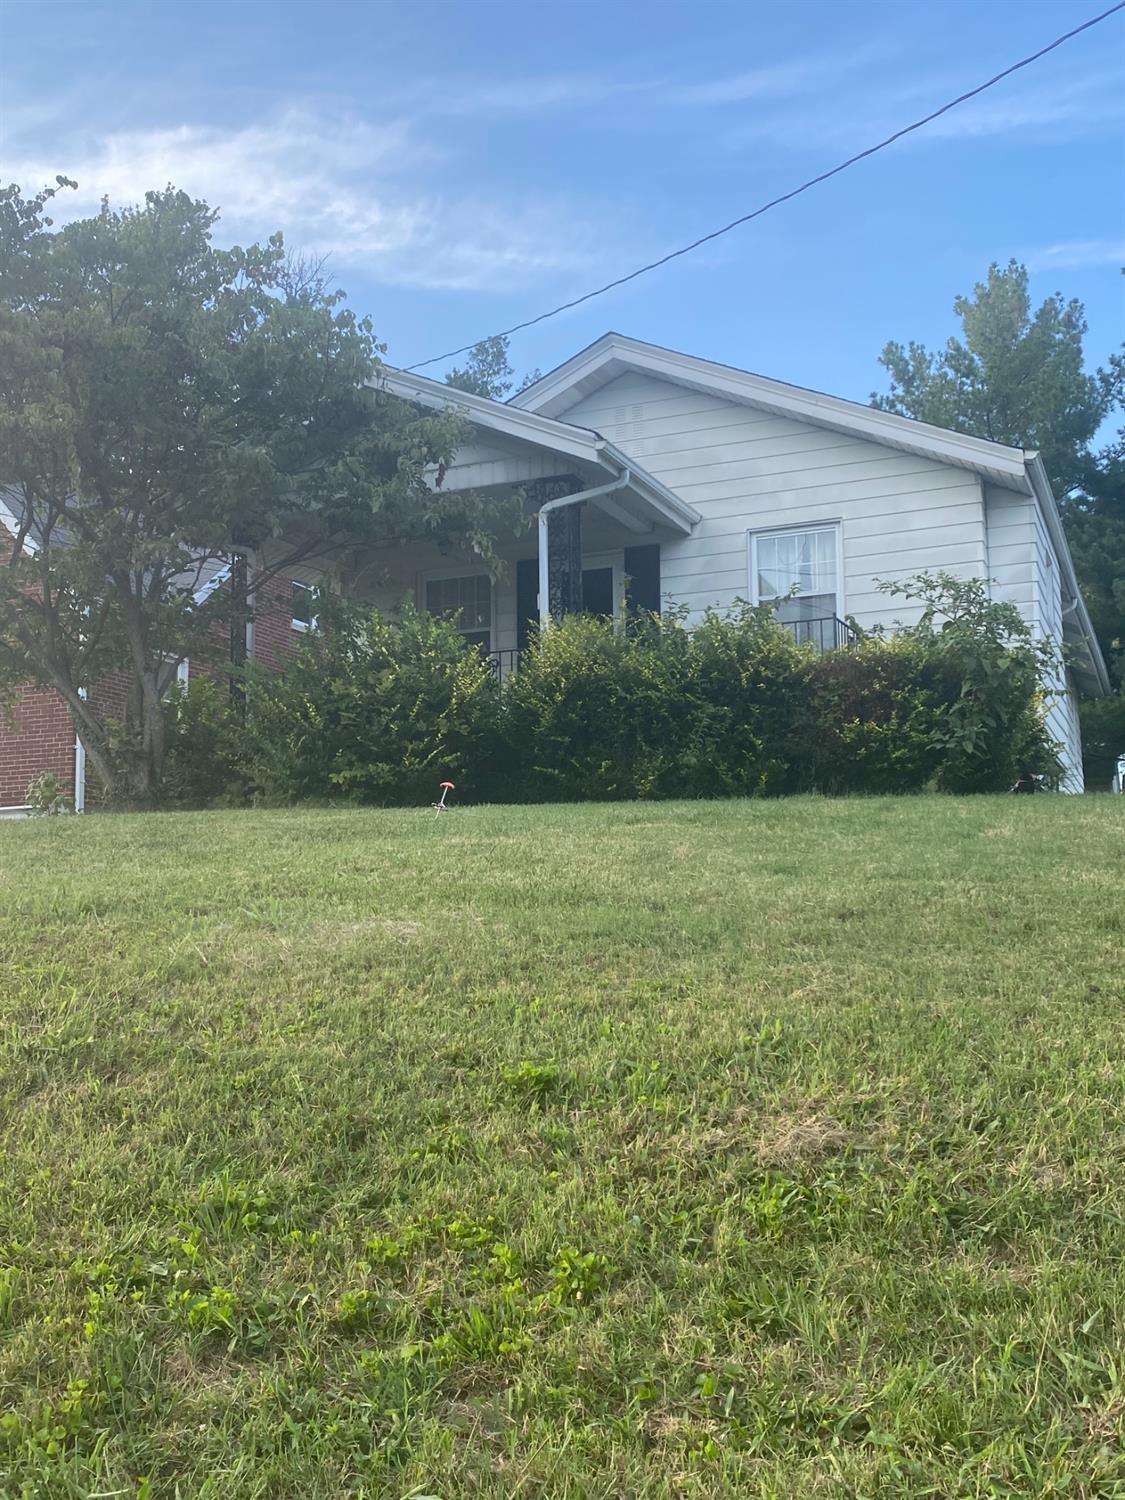 3782 Boomer Road, Green Twp, Ohio 45247, 3 Bedrooms Bedrooms, 6 Rooms Rooms,1 BathroomBathrooms,Single Family Residence,For Sale,Boomer,1714292